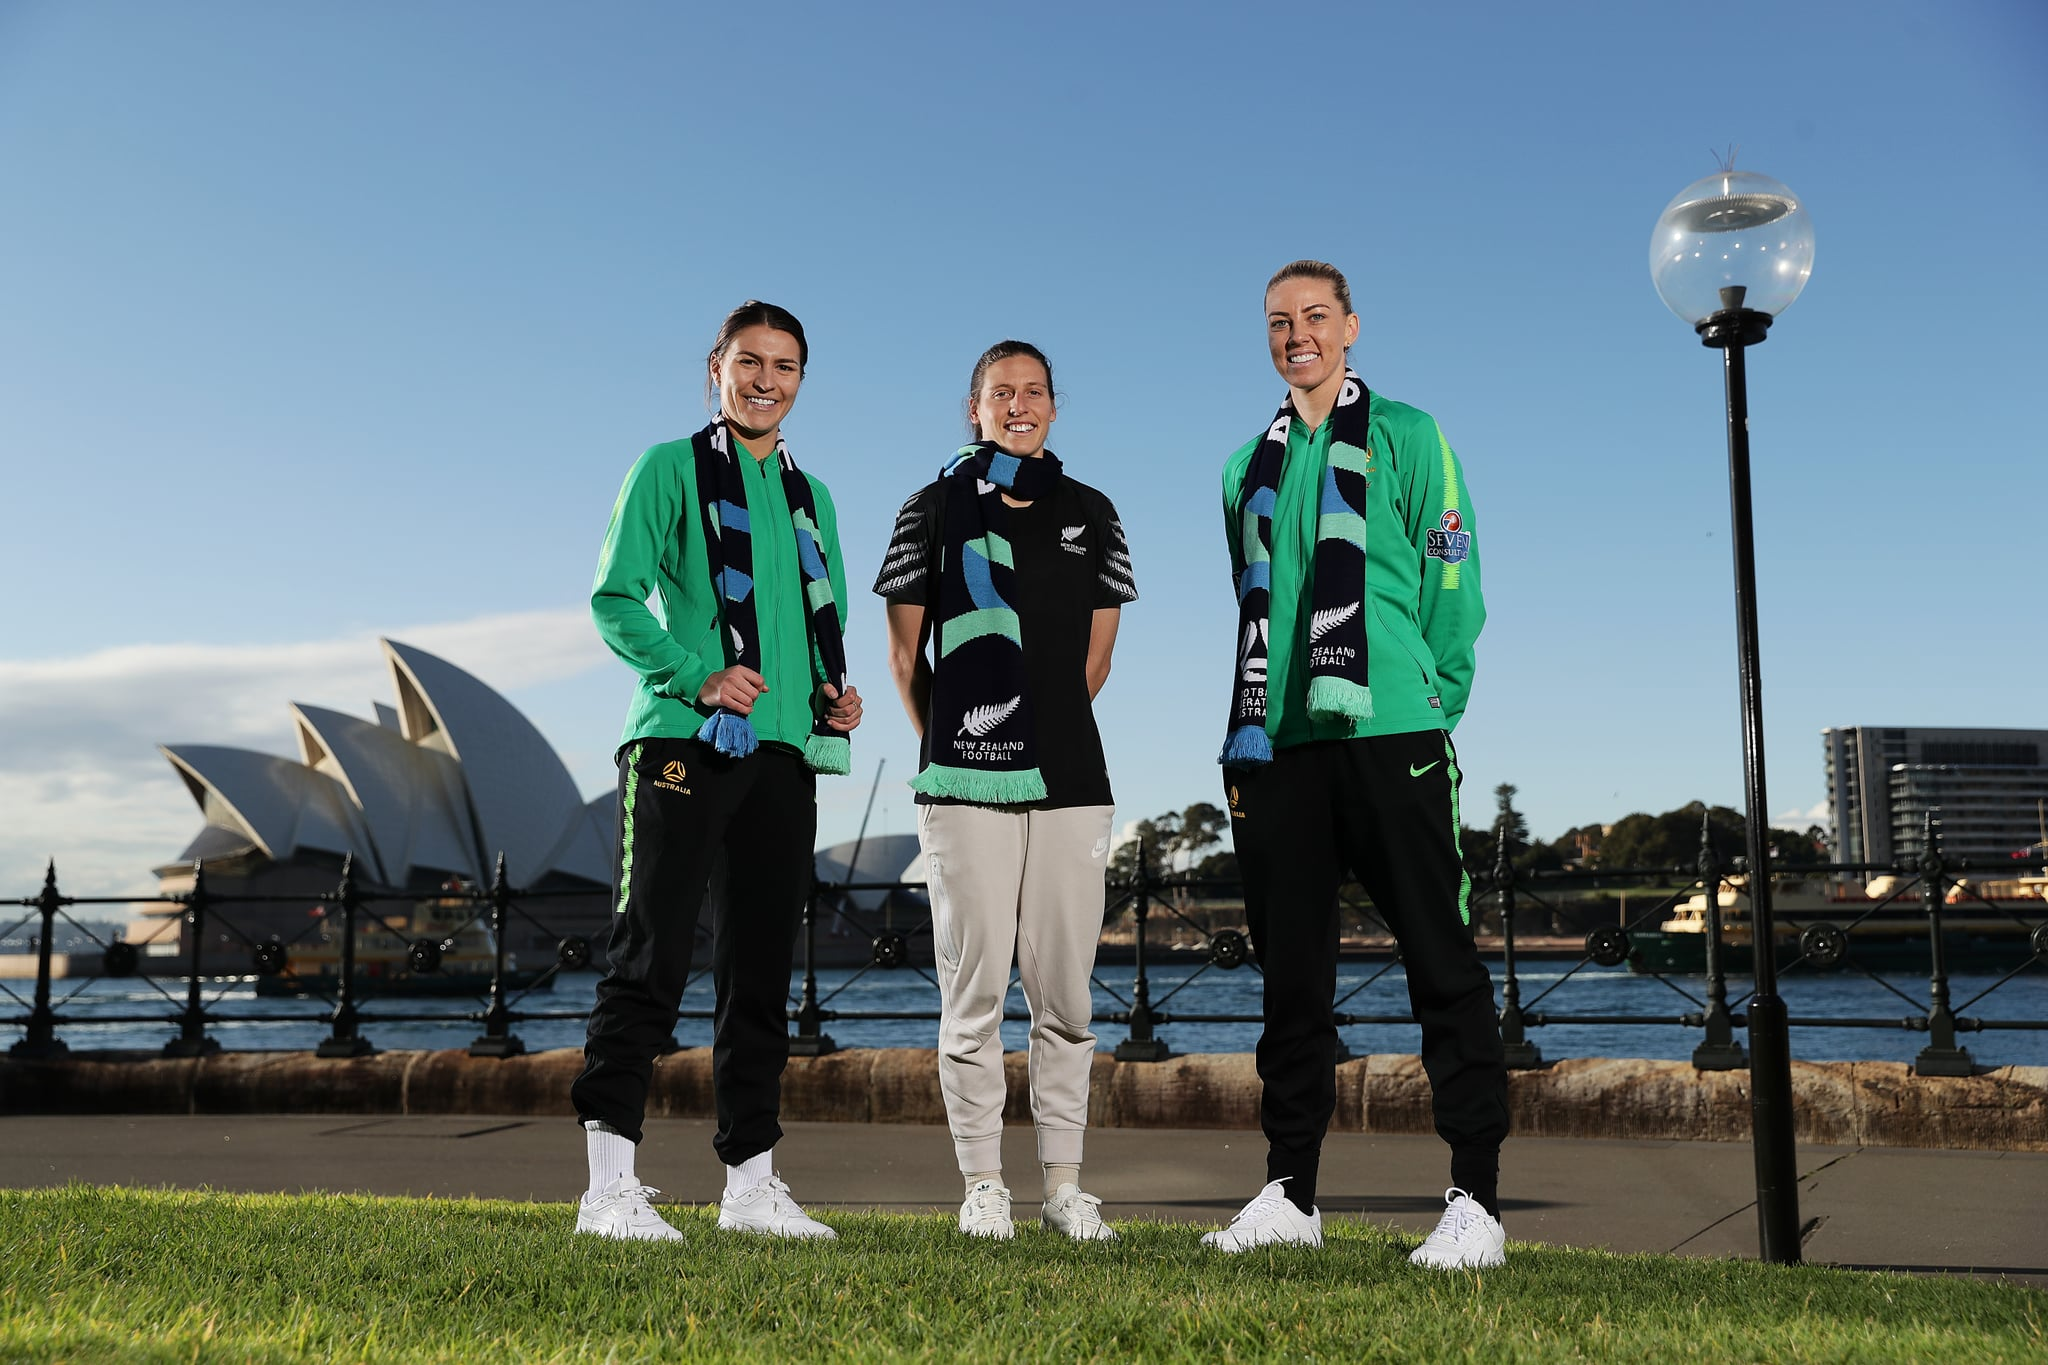 SYDNEY, AUSTRALIA - JUNE 26: Alanna Kennedy and Steph Catley of the Matildas pose with Football Fern, Rebekah Stott during a media opportunity following the successful bid for Australia & New Zealand to host the 2023 FIFA Women's World Cup, at Hickson Road Reserve, The Rocks on June 26, 2020 in Sydney, Australia. (Photo by Mark Metcalfe/Getty Images)